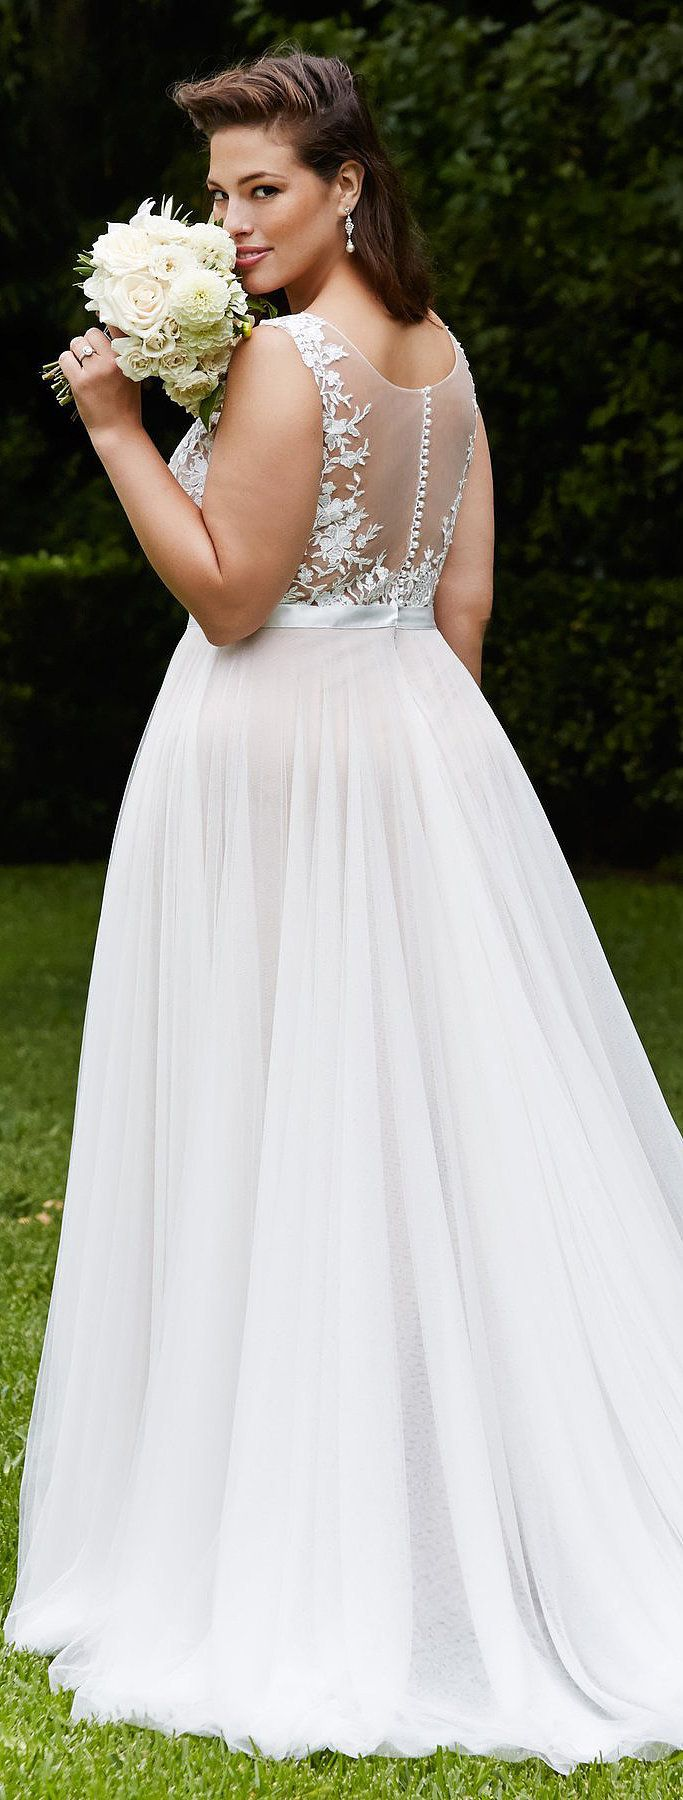 Pin on Wedding Gowns